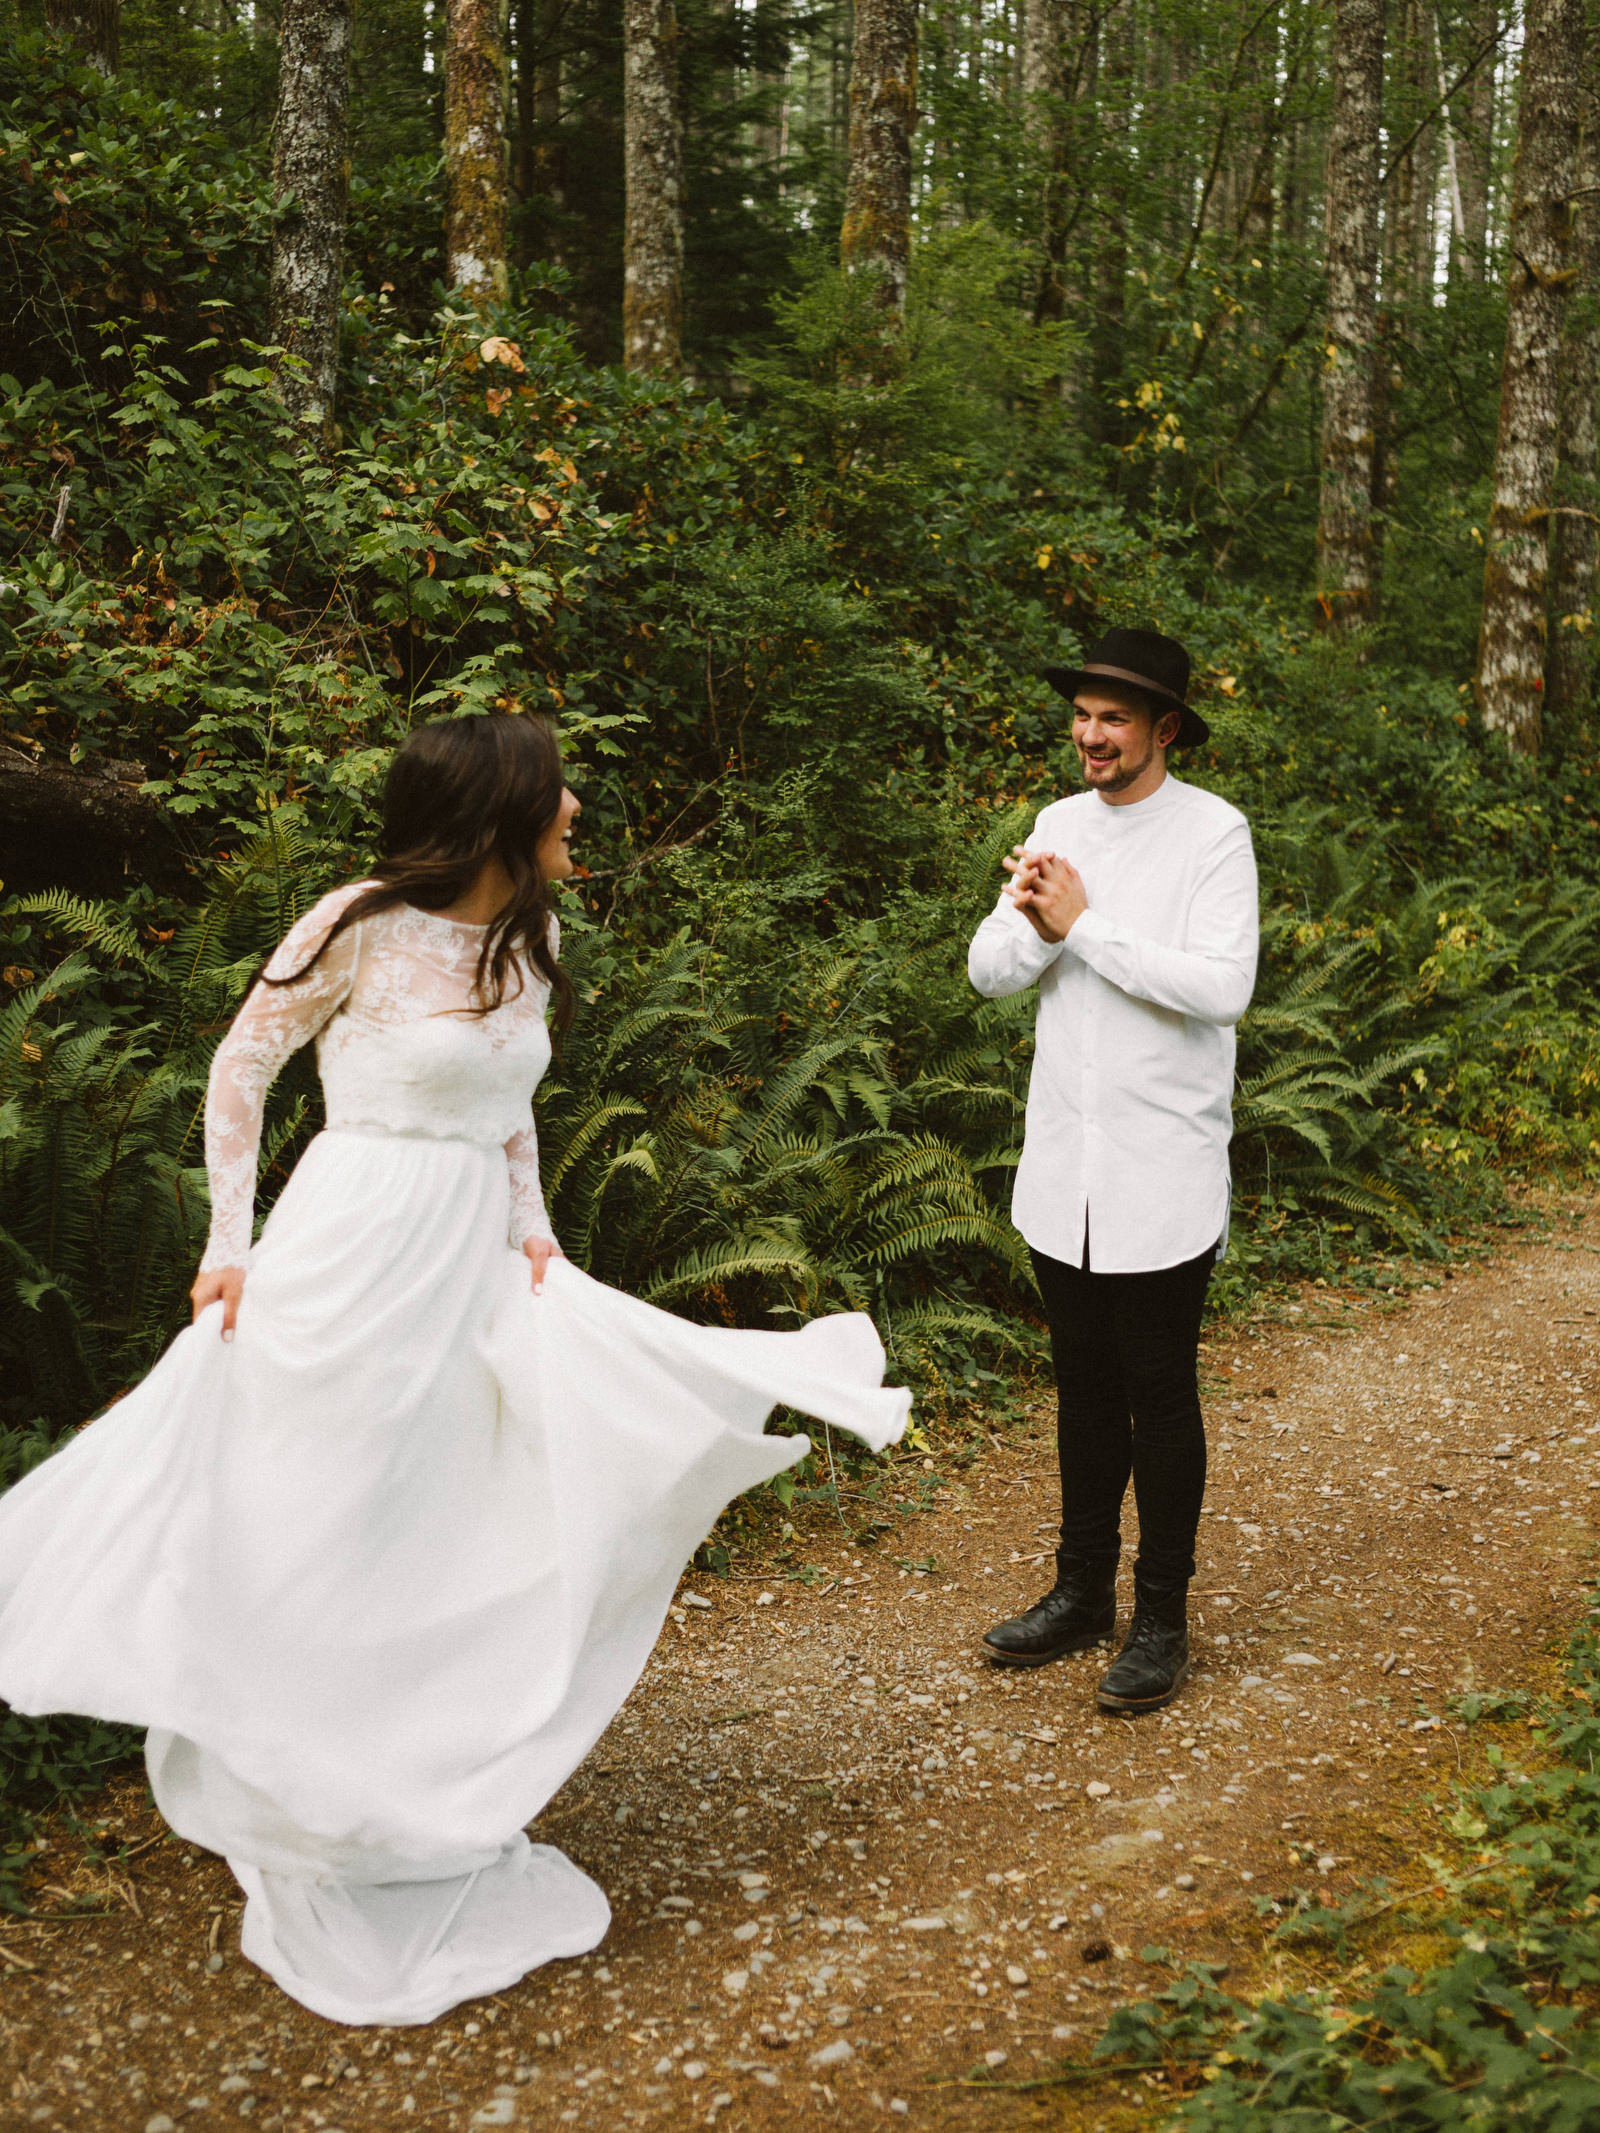 athena-and-camron-seattle-elopement-wedding-benj-haisch-rattlesnake-lake-christian-couple-goals9